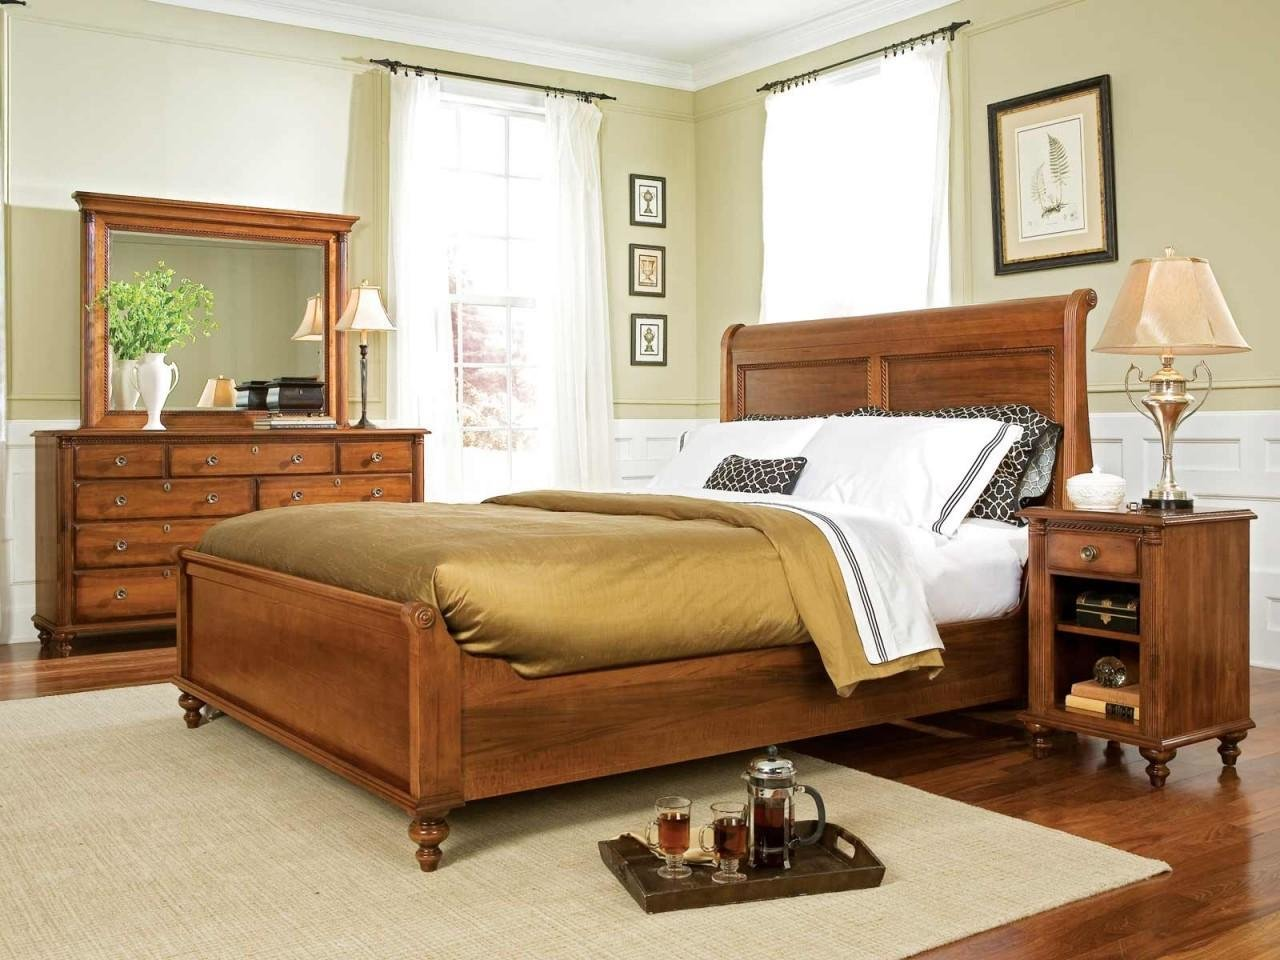 Best 32 Classy Bedroom Furniture Sets Ideas And Designs With Pictures